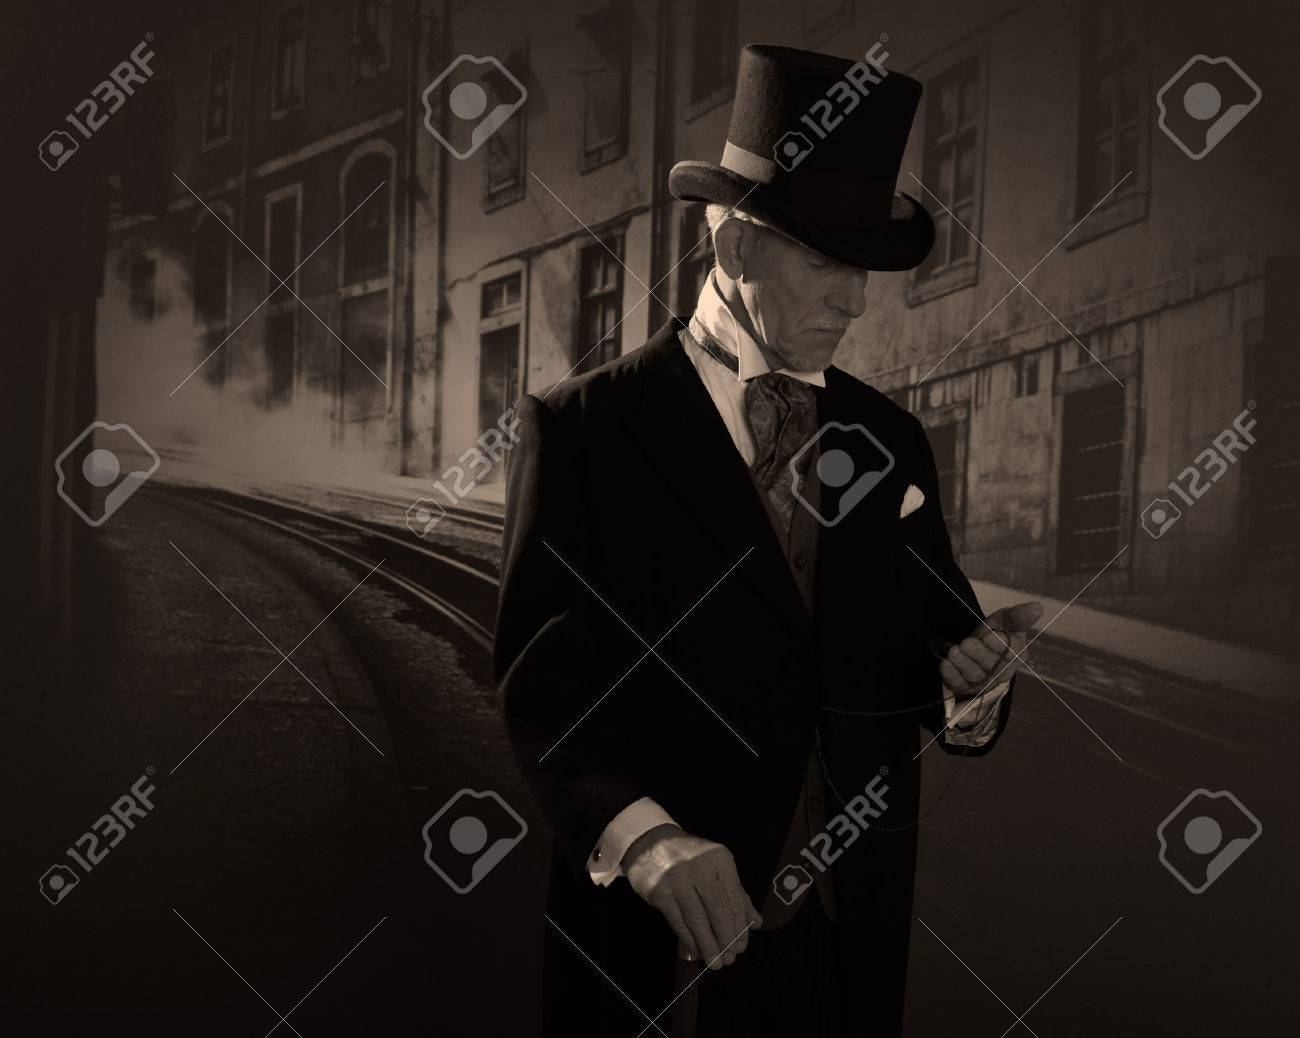 Man 1900 style wearing black hat and coat. Medicine man in Dickens style in  night